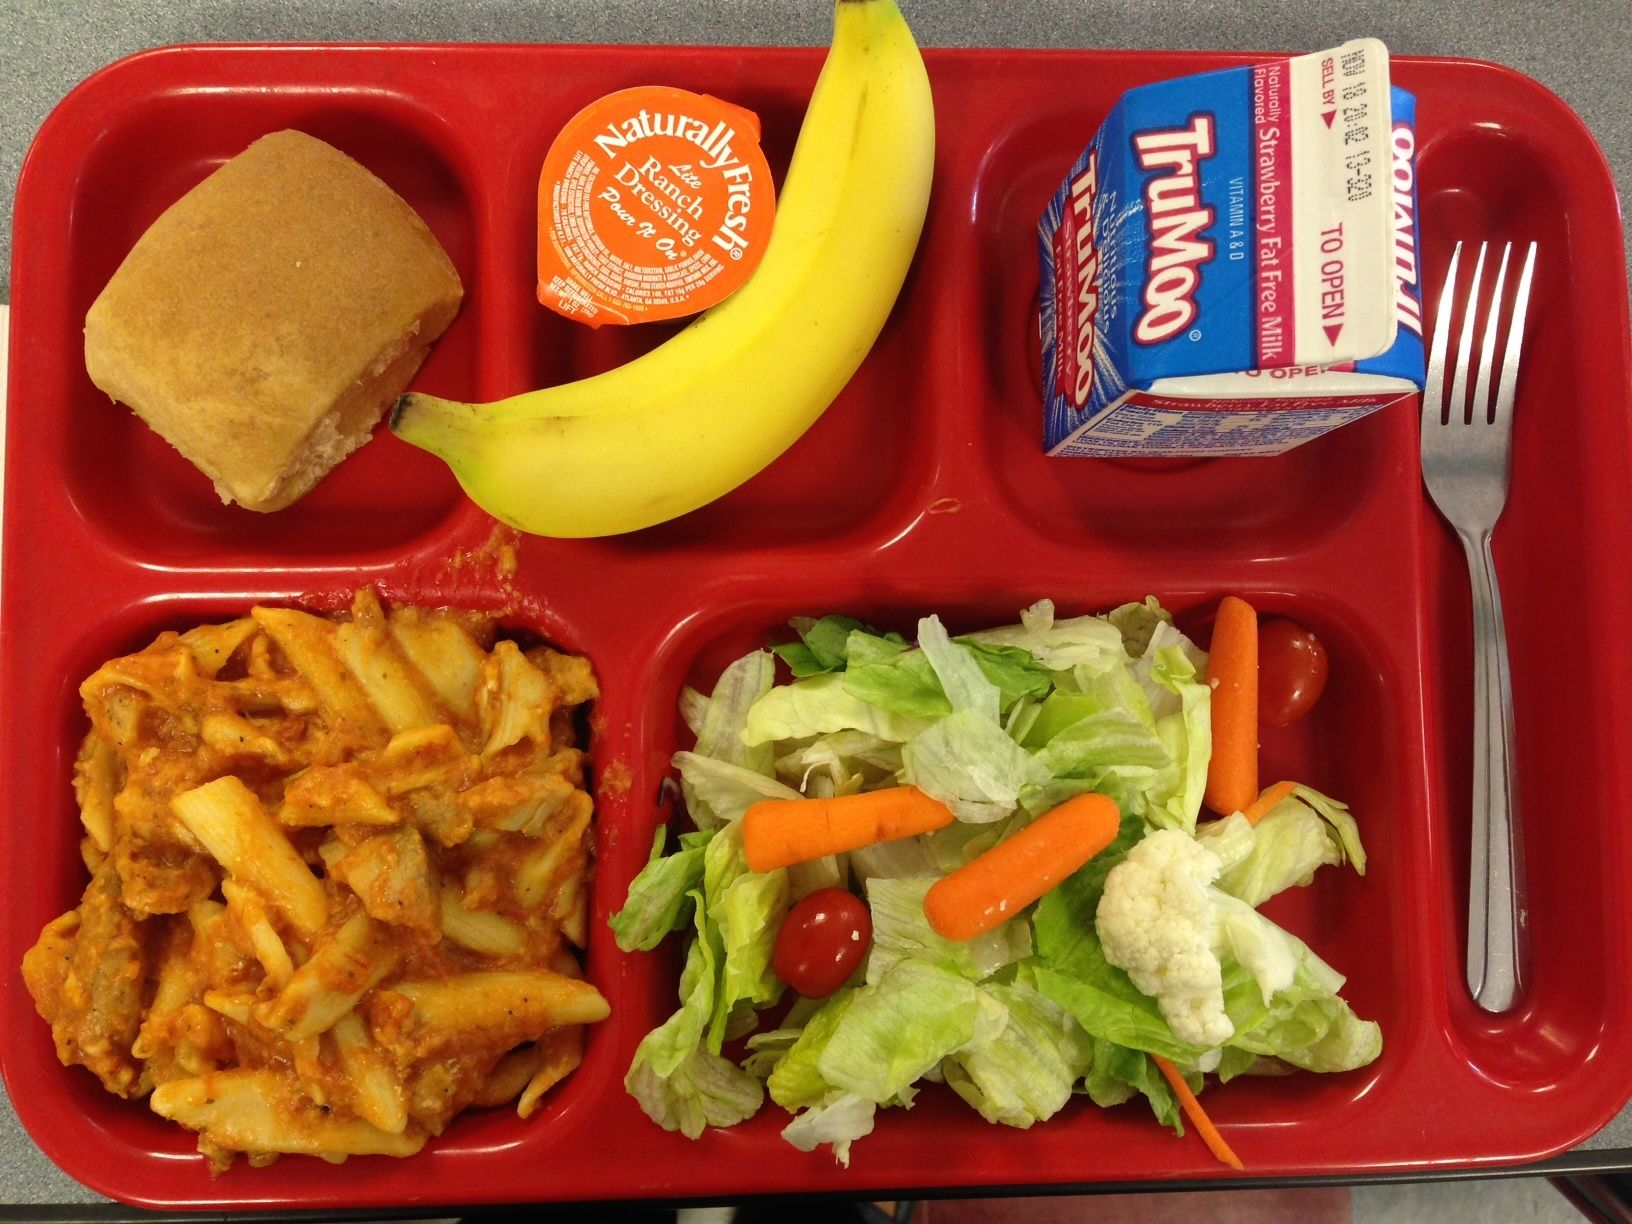 better school lunch essay Eating from the school cafeteria education essay just go outside school and eat better food and don't take care about safeness on school lunch.